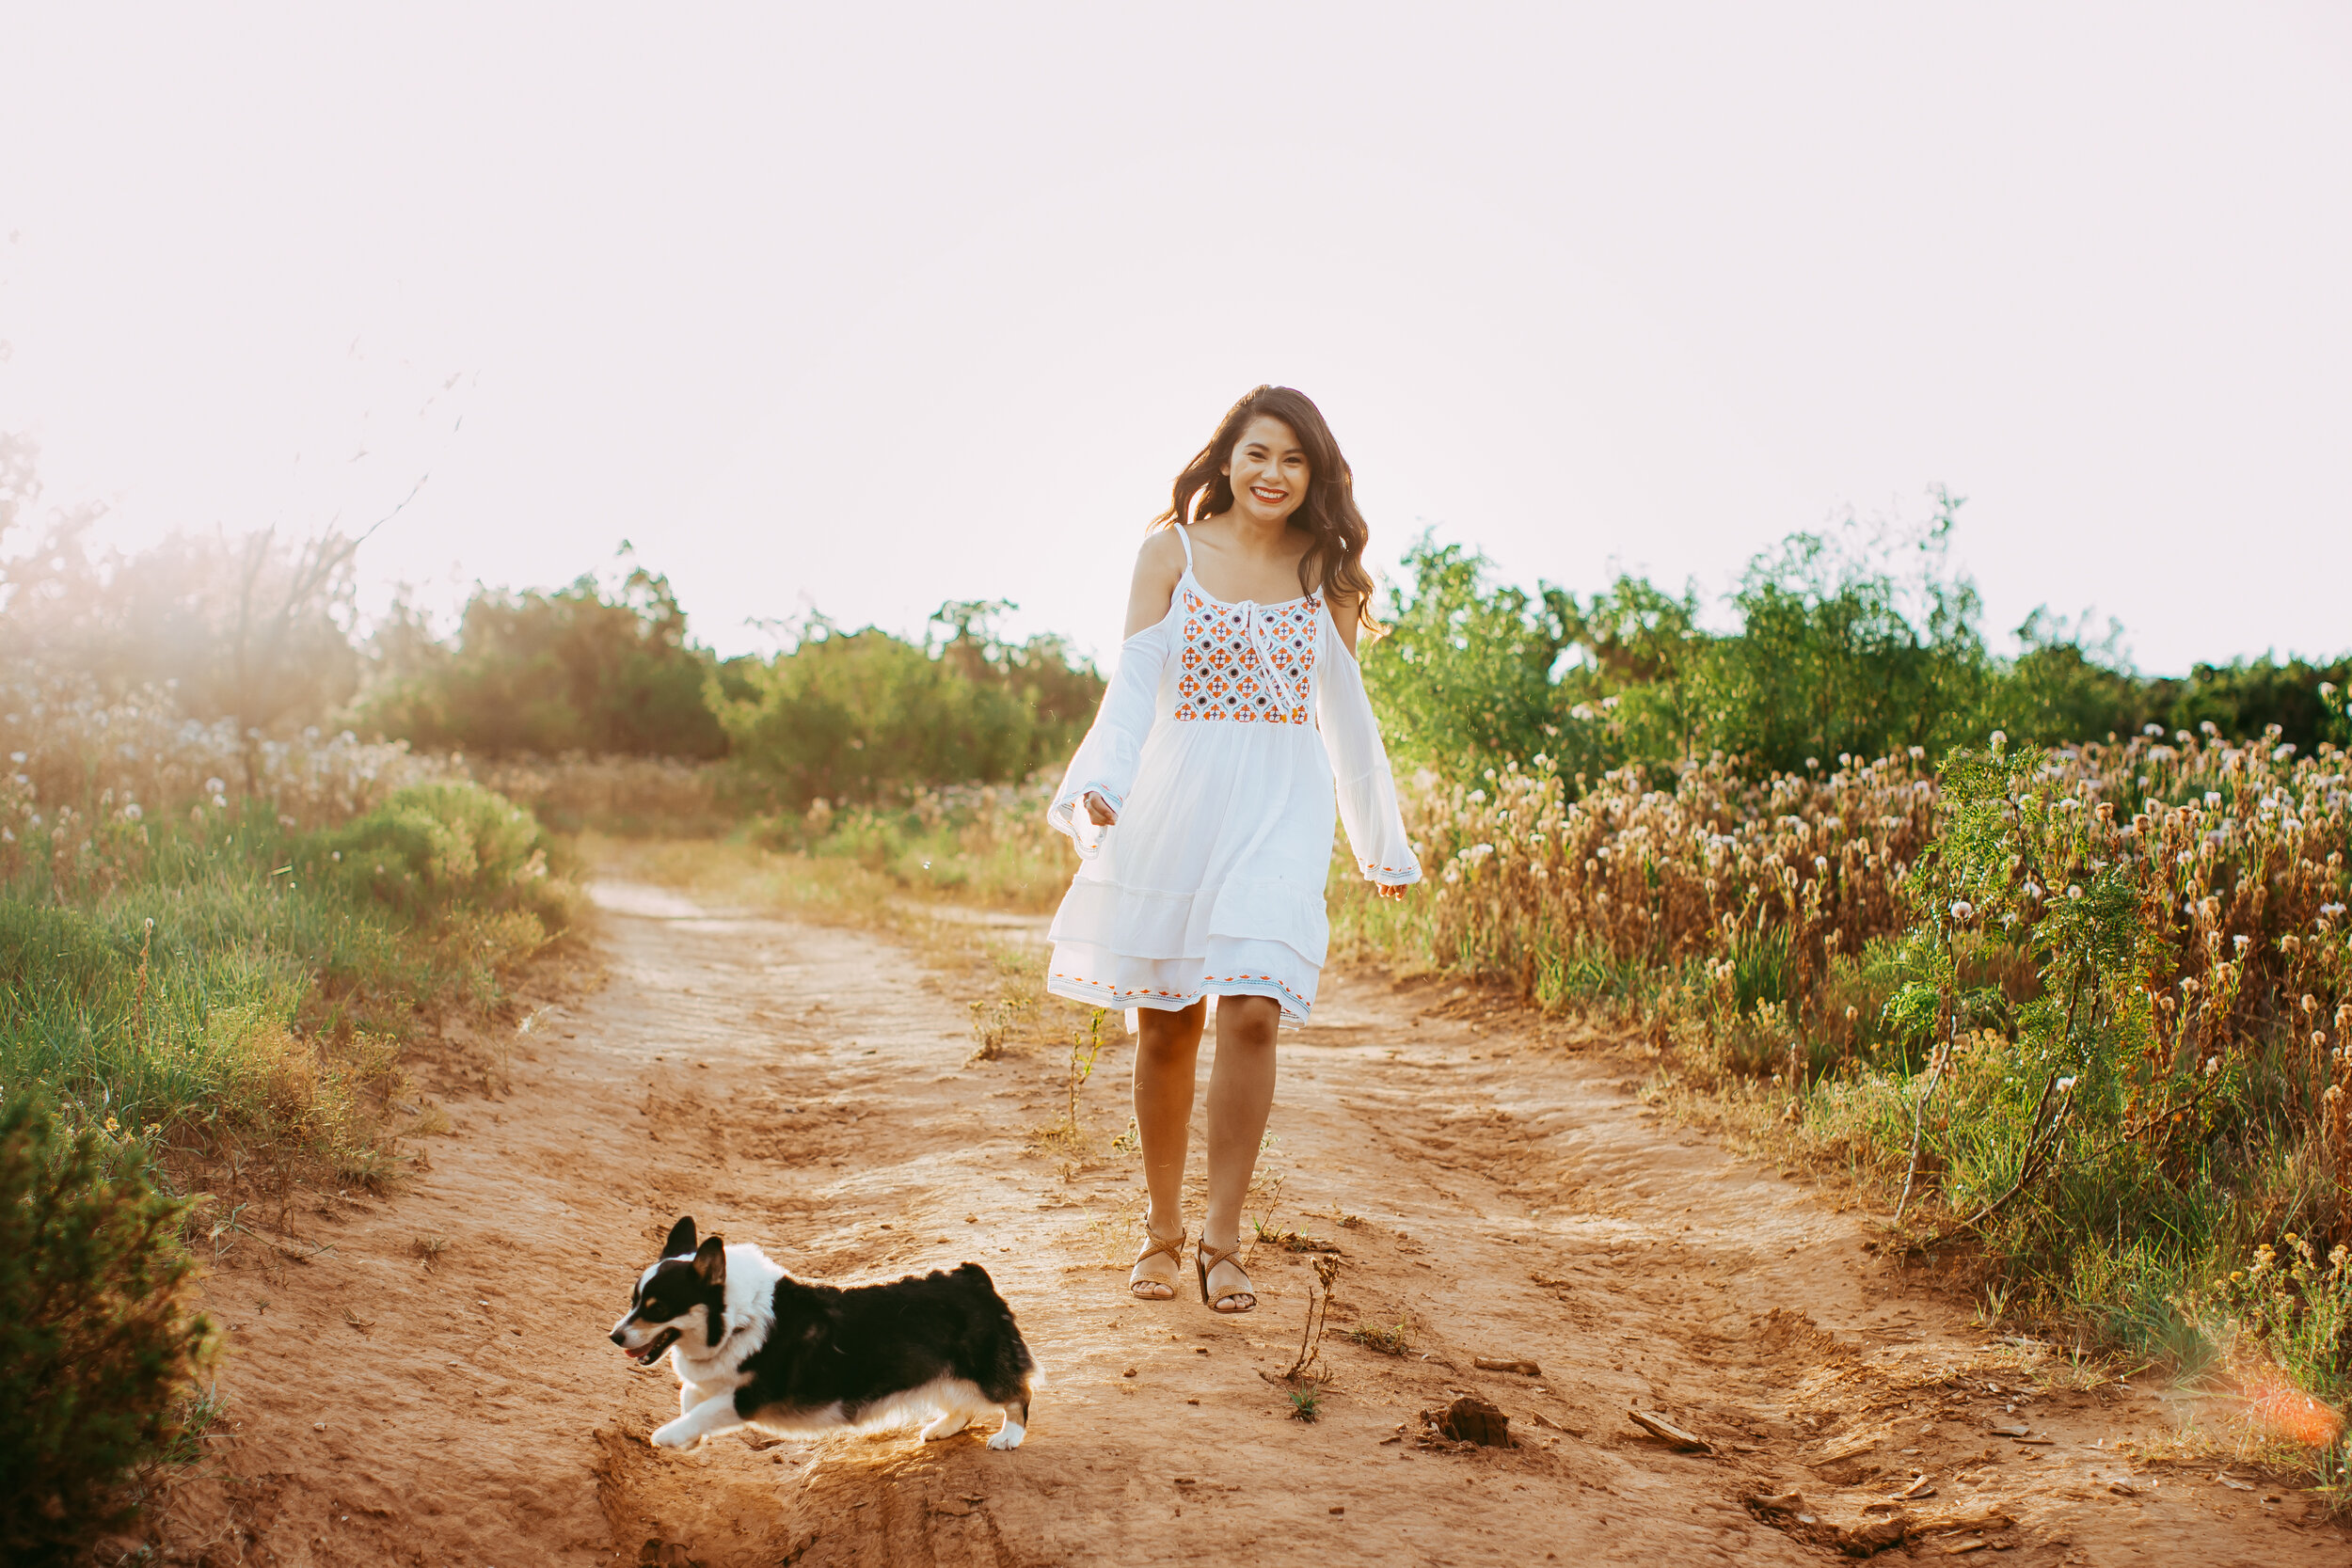 Walking down the path with her sweet puppy #tealawardphotography #texasphotographer #amarillophotography #amarillophotographer #lifestylephotography #emotionalphotography #photoshoot #family #puppylove #purejoy #puppyphotos #lifestyleinteraction